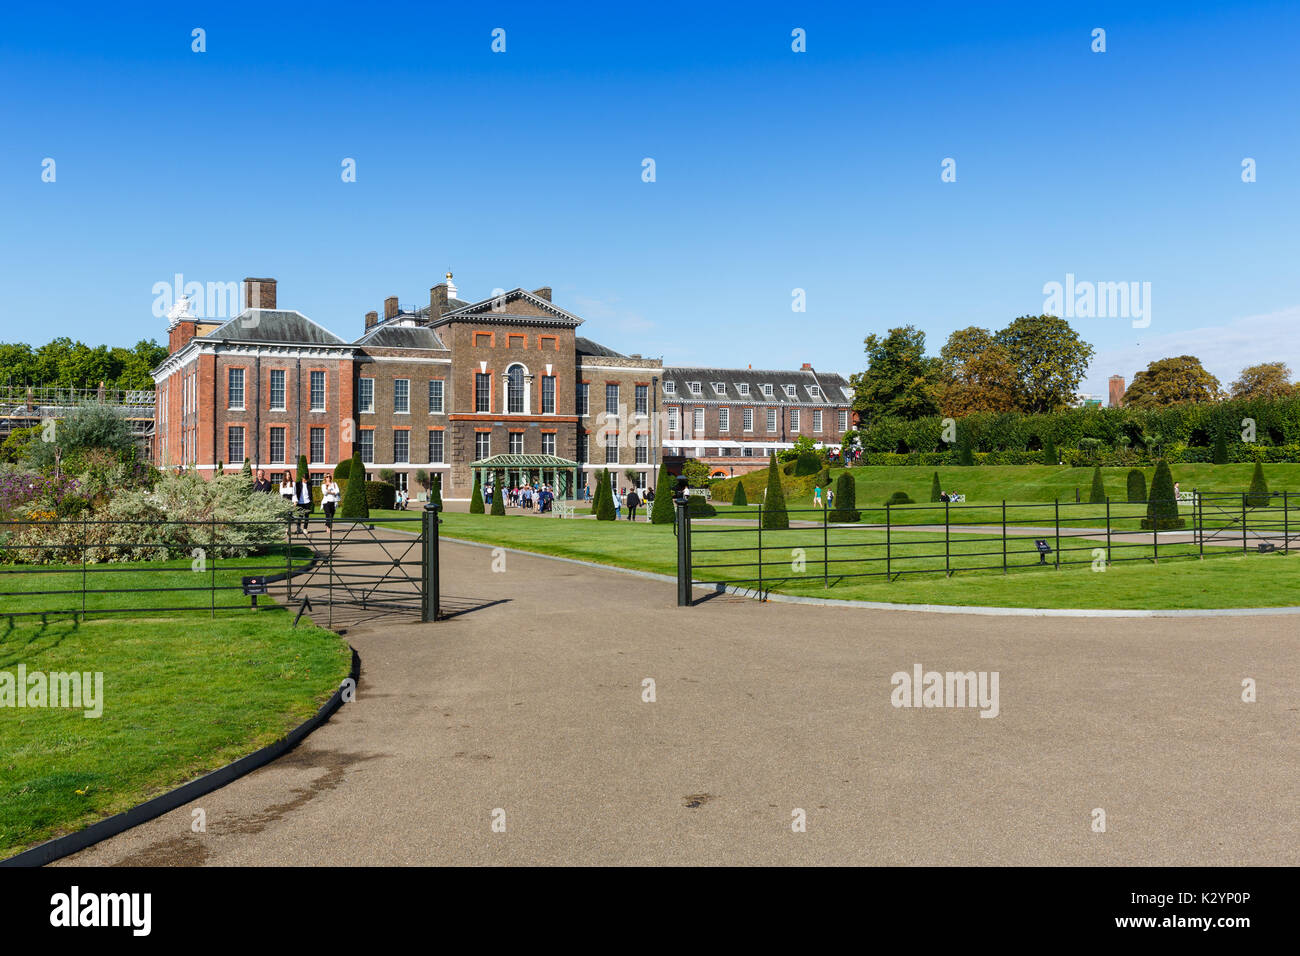 Kensington palace, London, England - Stock Image